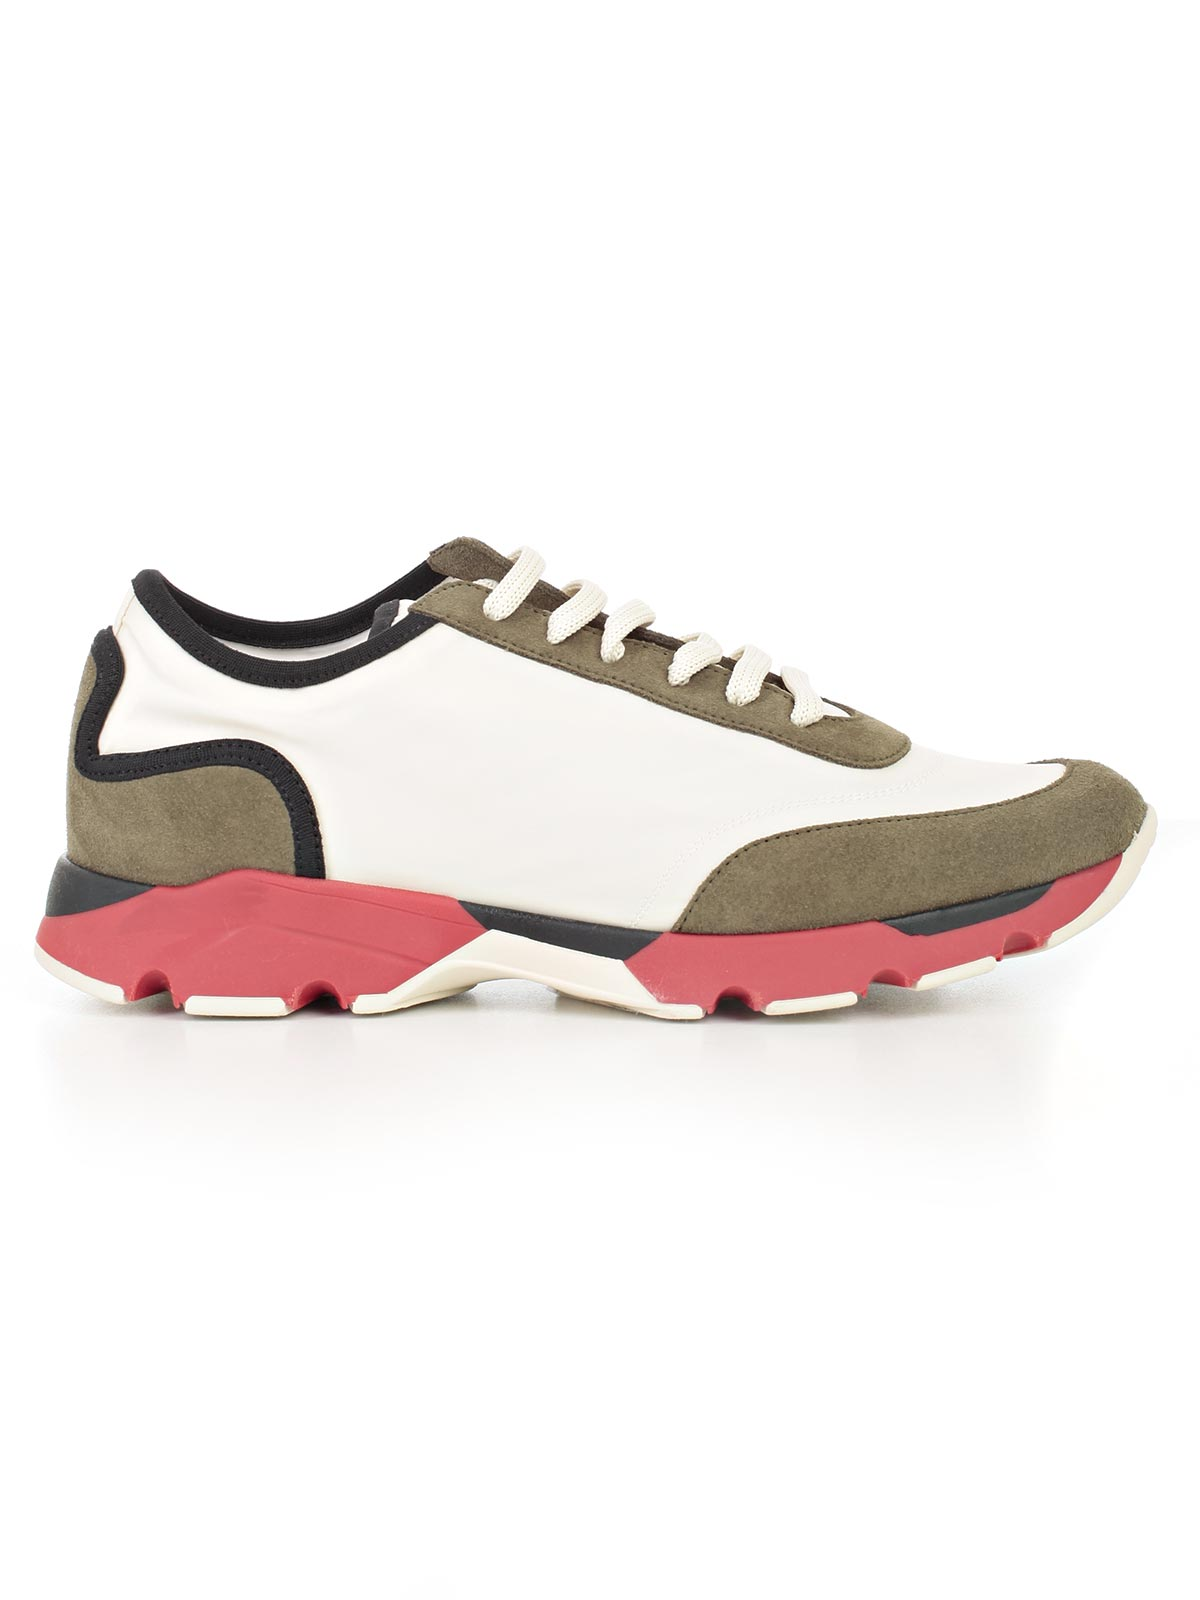 Picture of MARNI FOOTWEAR